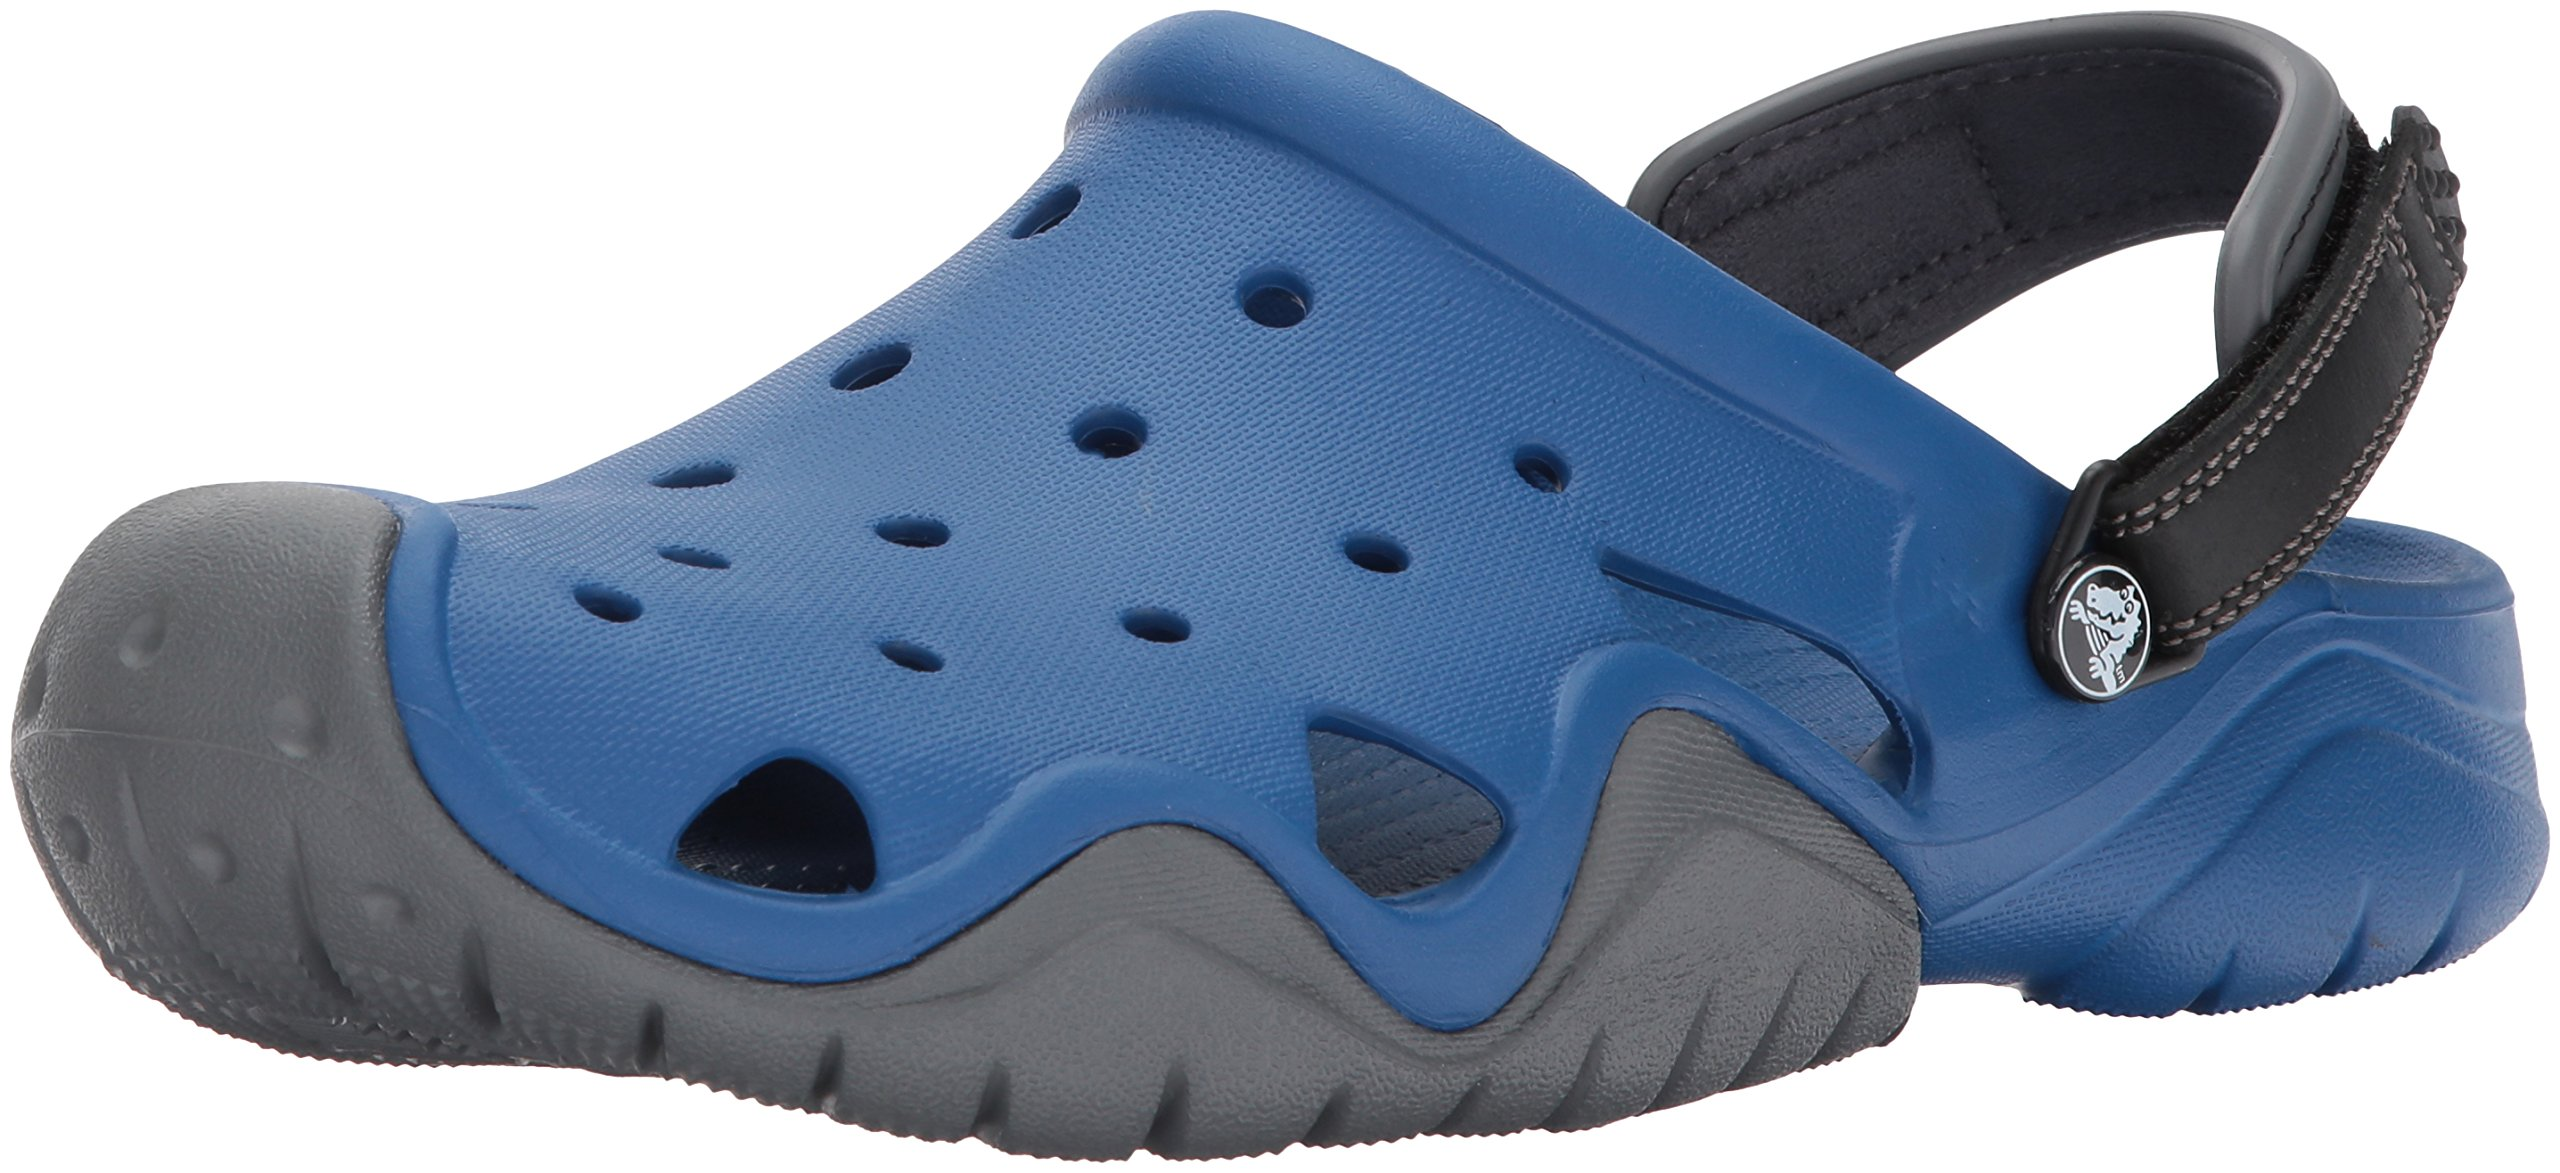 Crocs Men's Swiftwater Clog M Mule, Blue Jean/Slate Grey, 12 M US